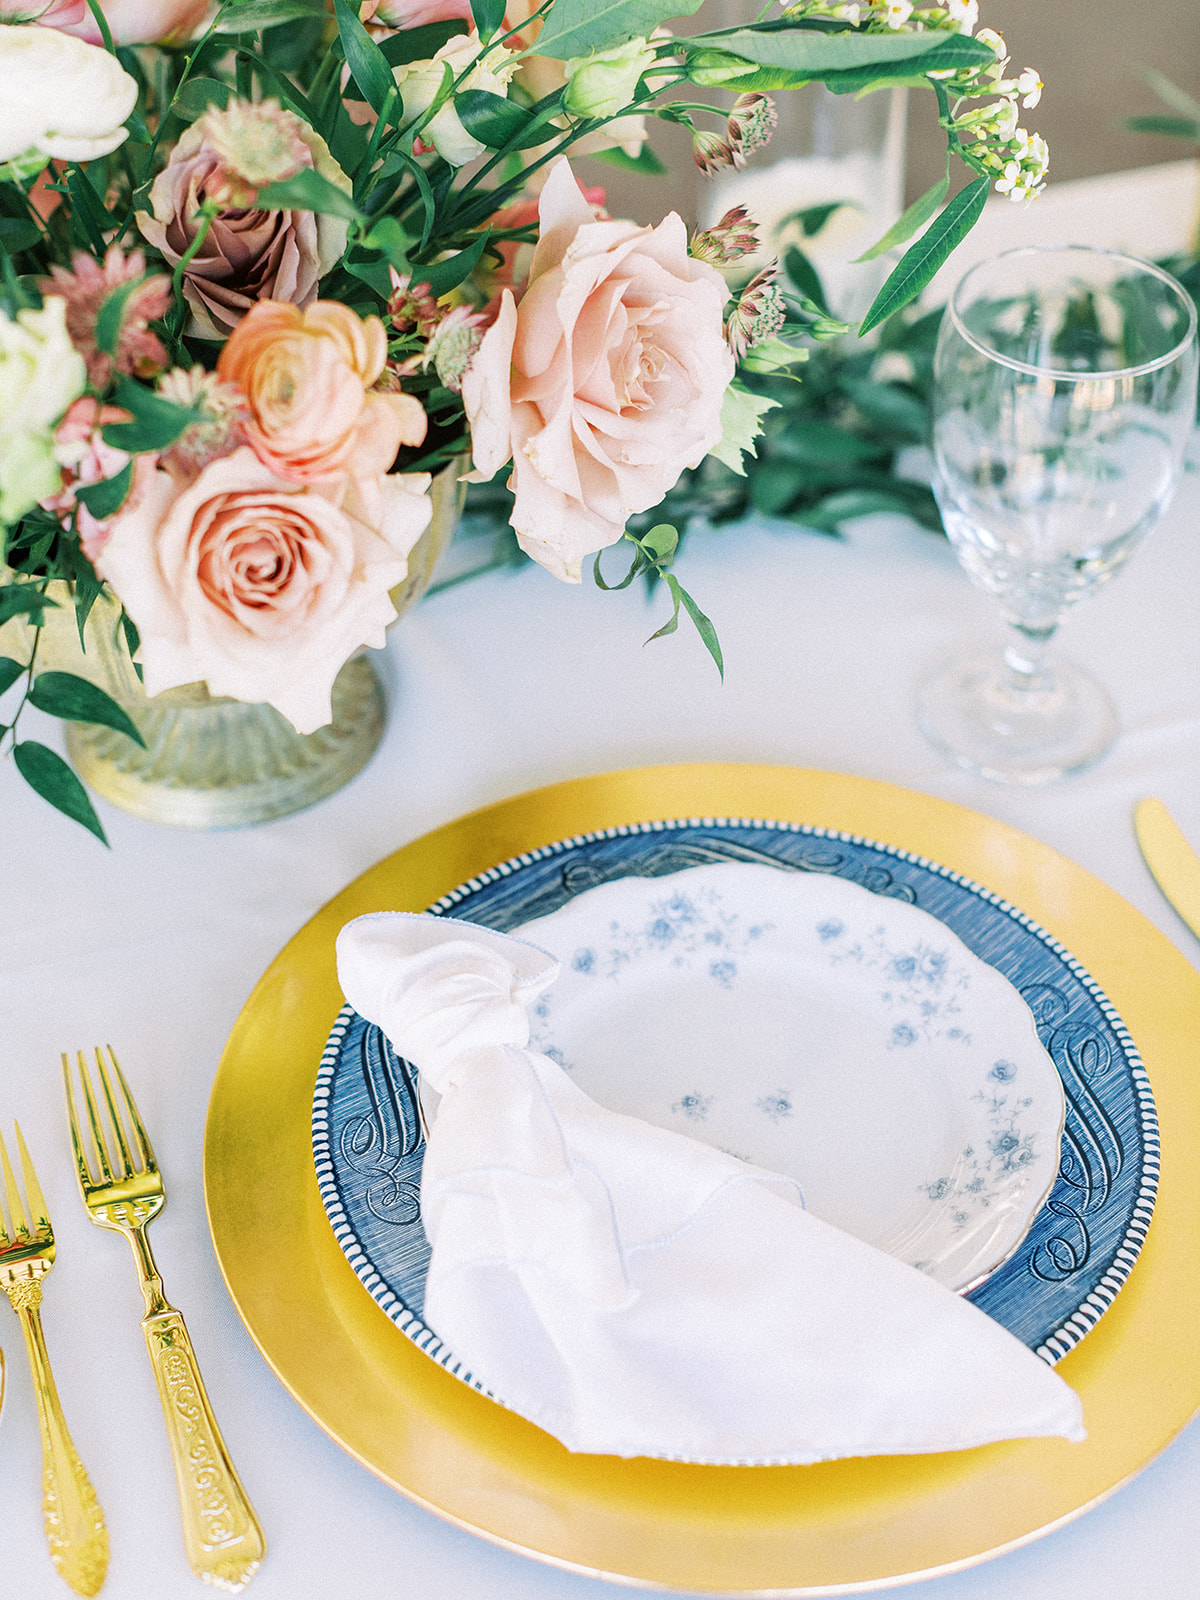 Vintage China Wedding Place Setting: Feminine and Whimsical Clark Gardens Wedding